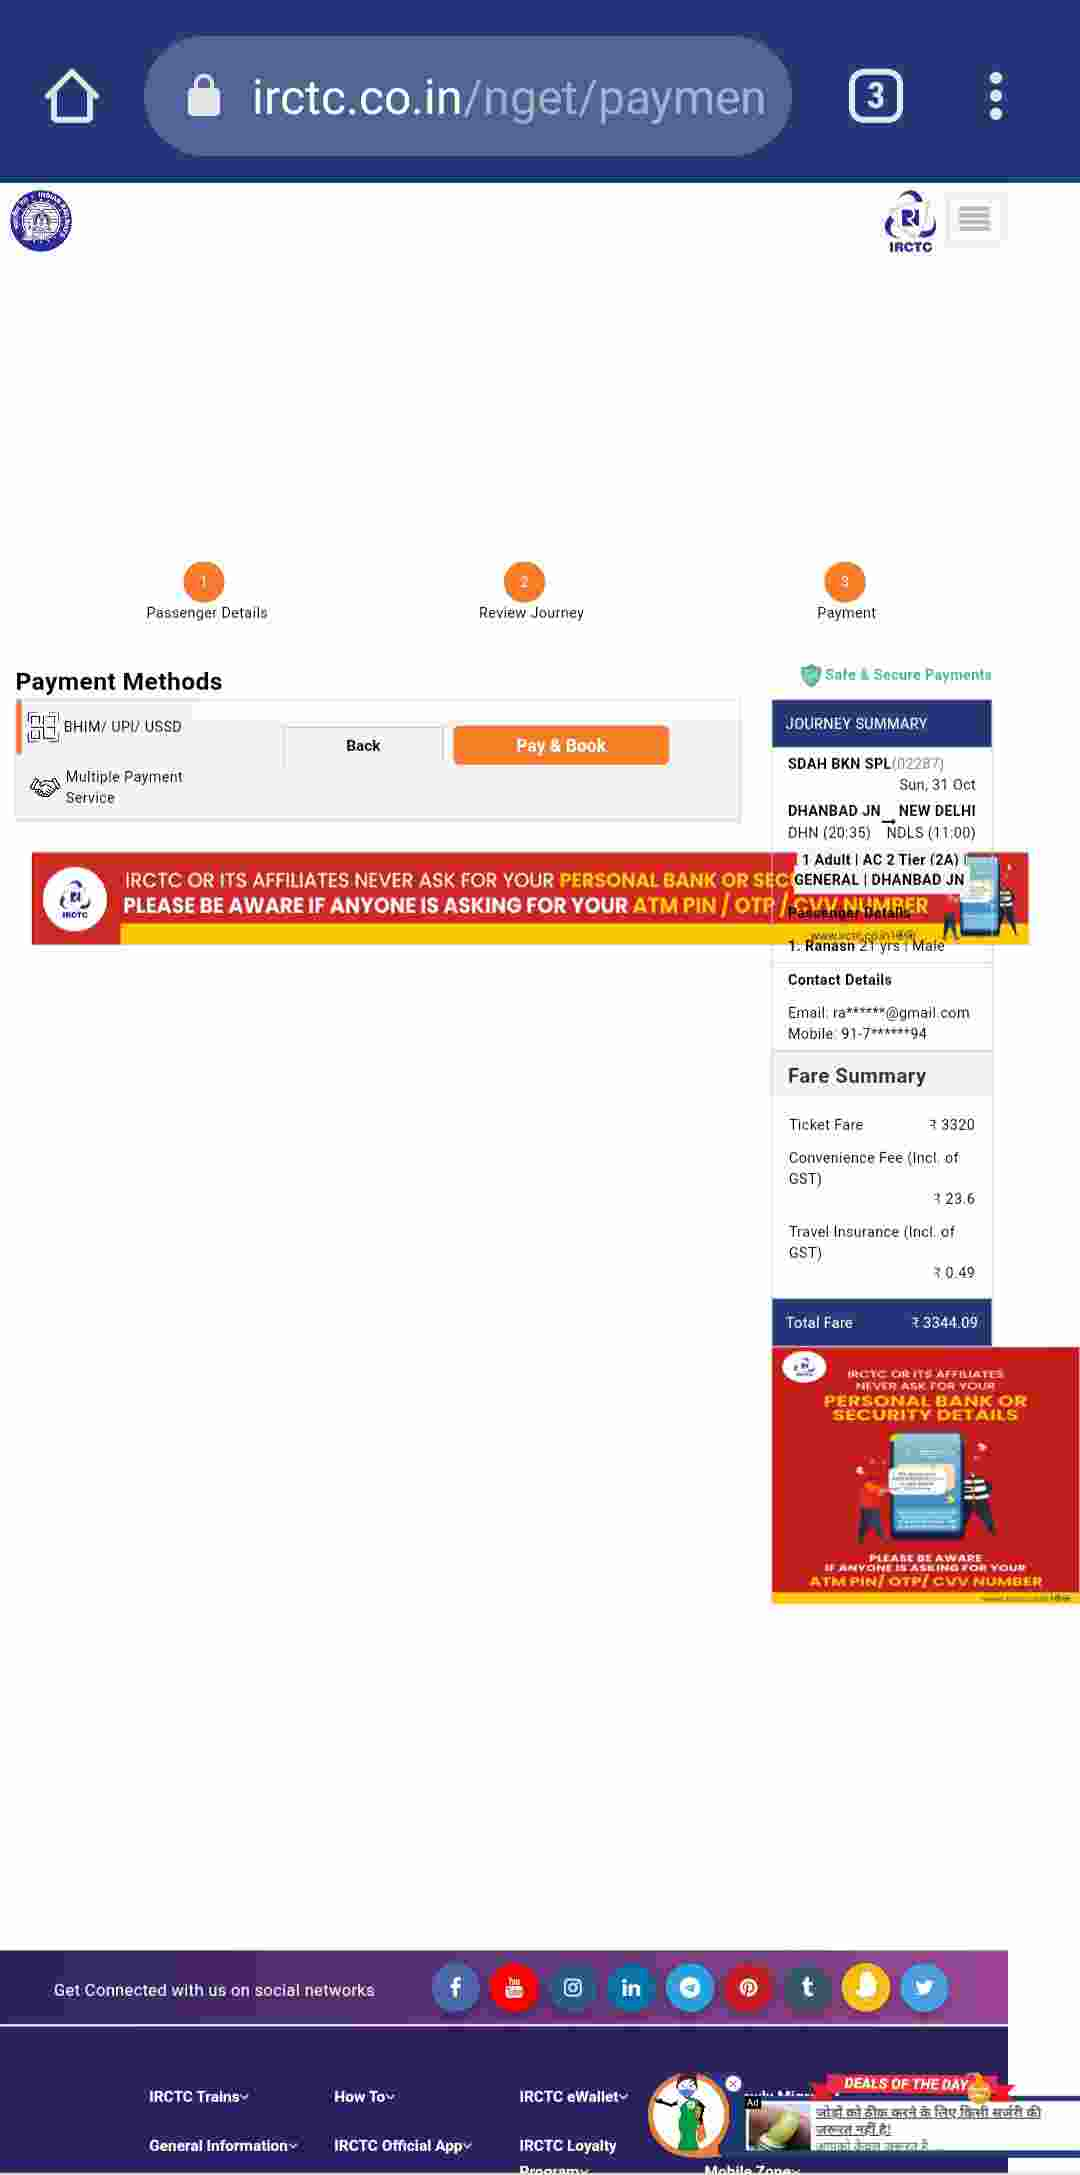 Last Step Payment and Print/Save Ticket